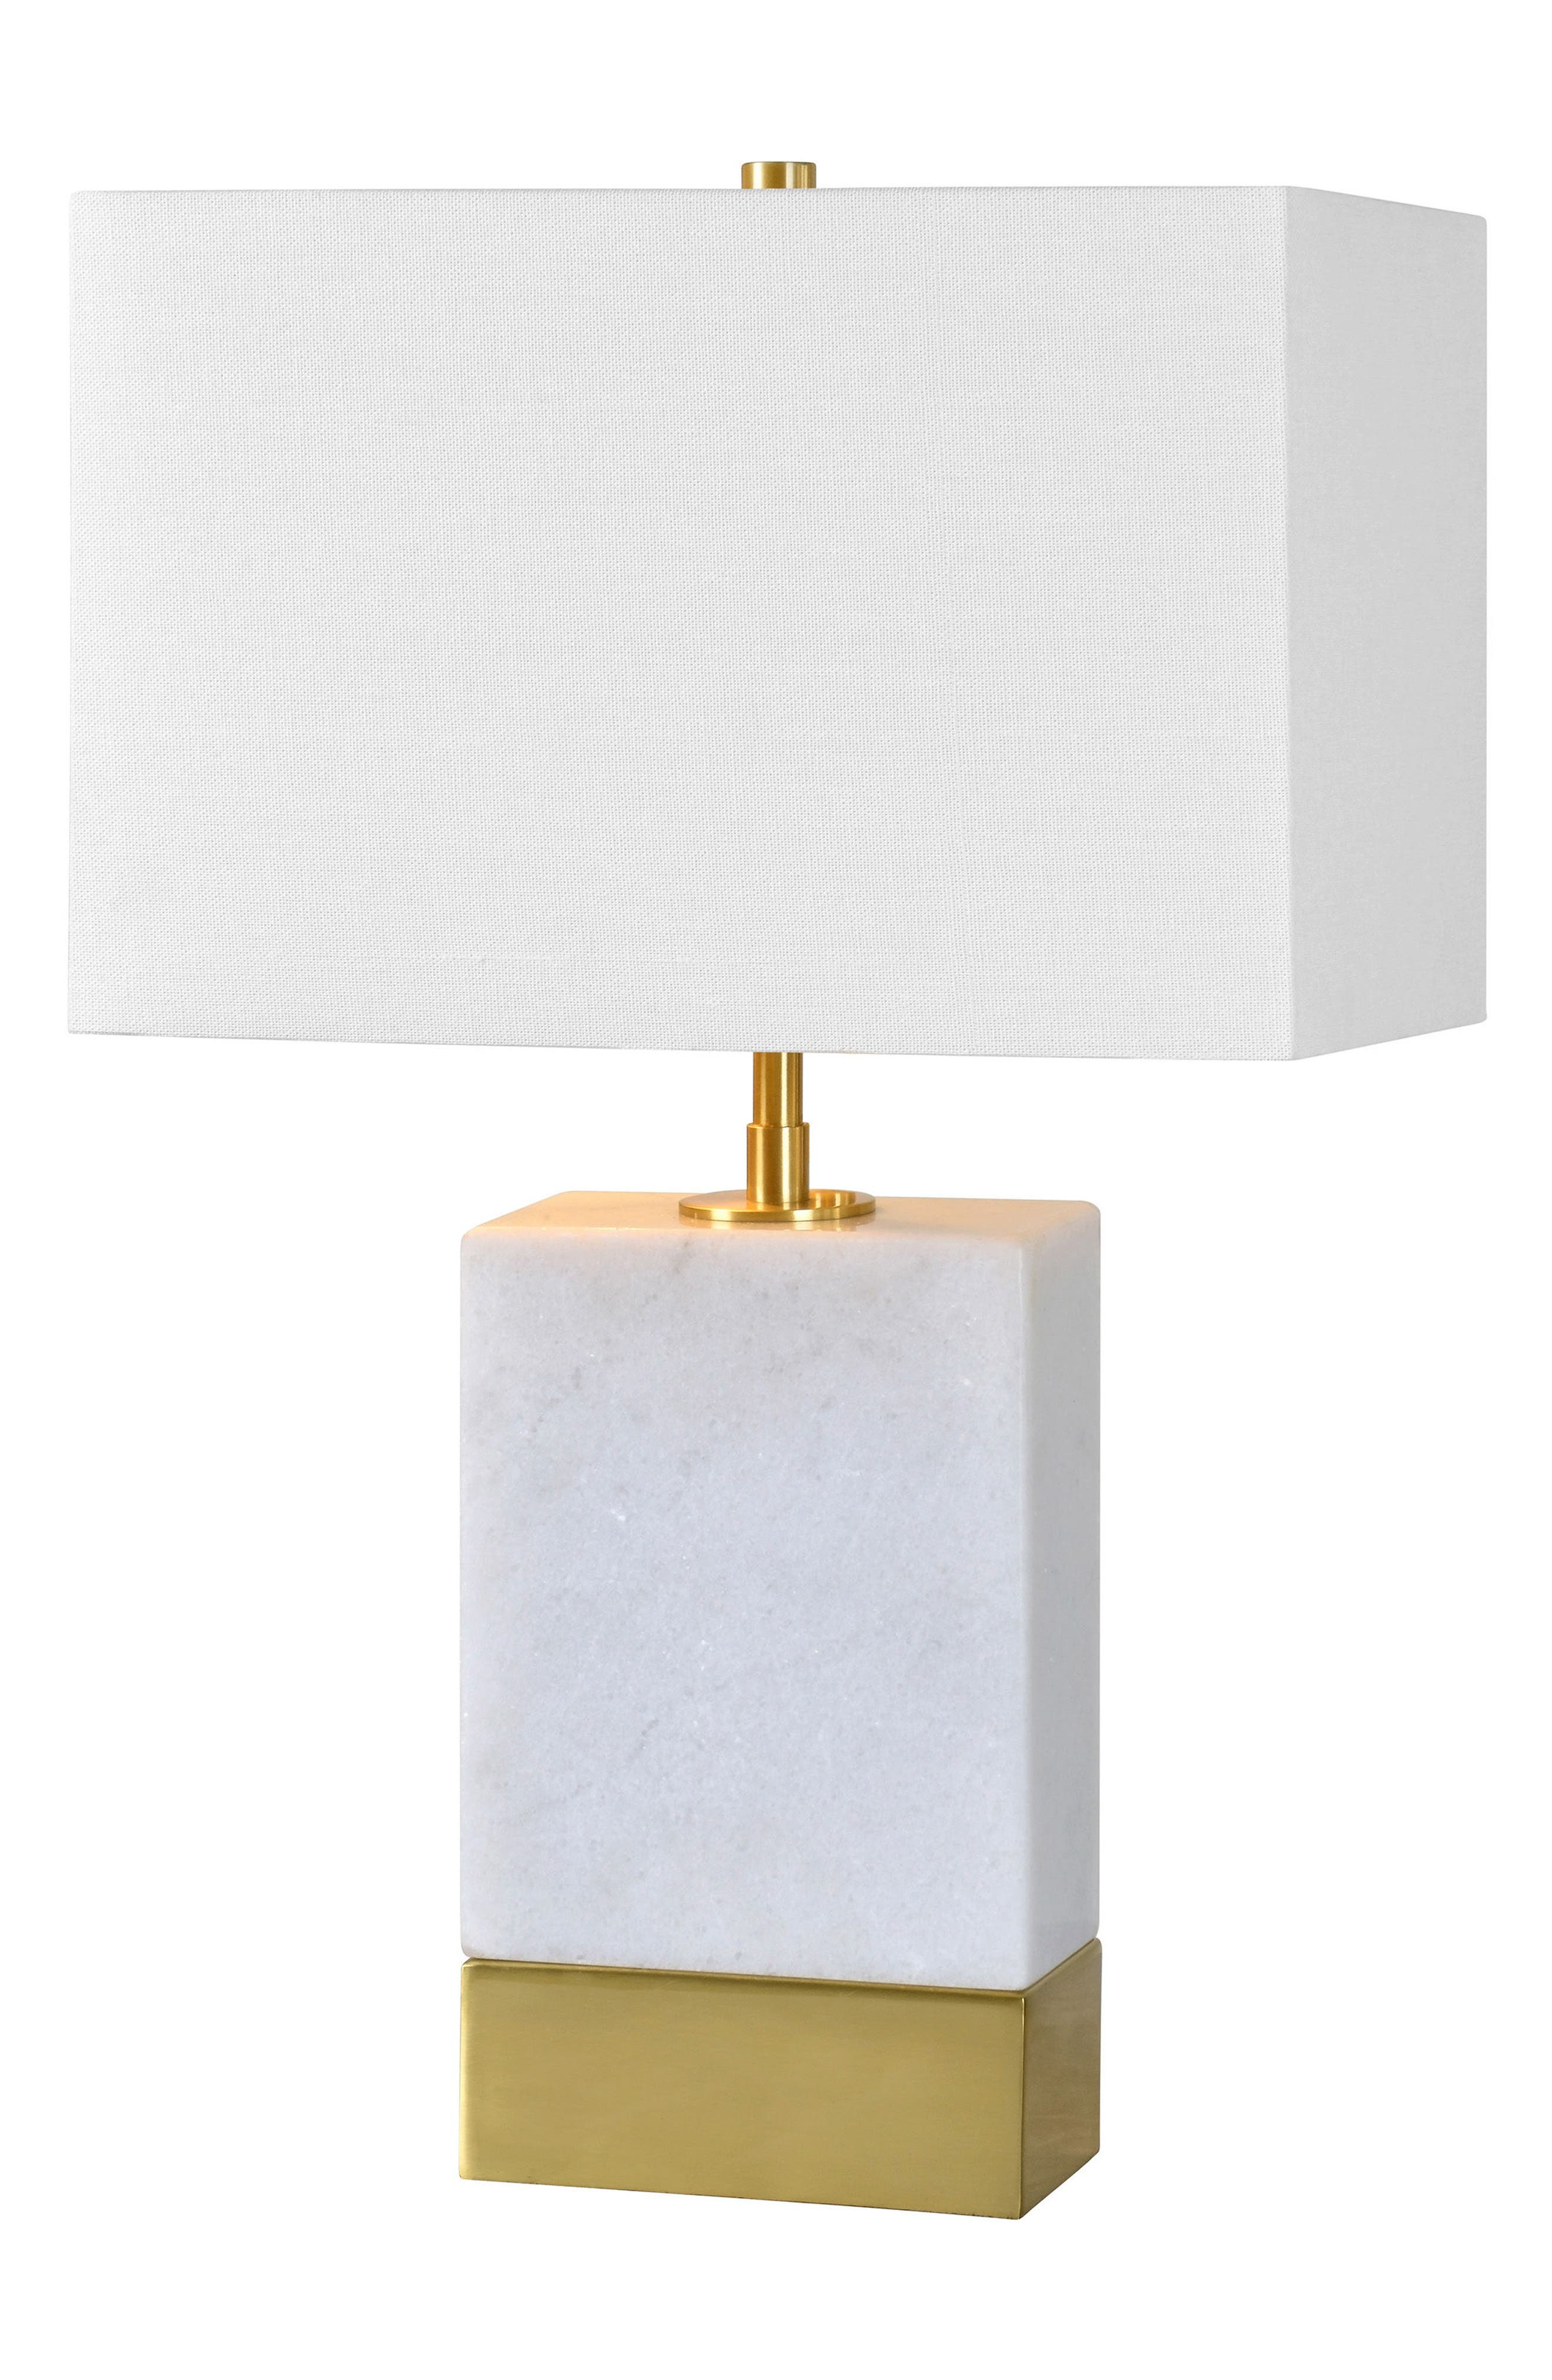 Main Image - Renwil Lucent Table Lamp